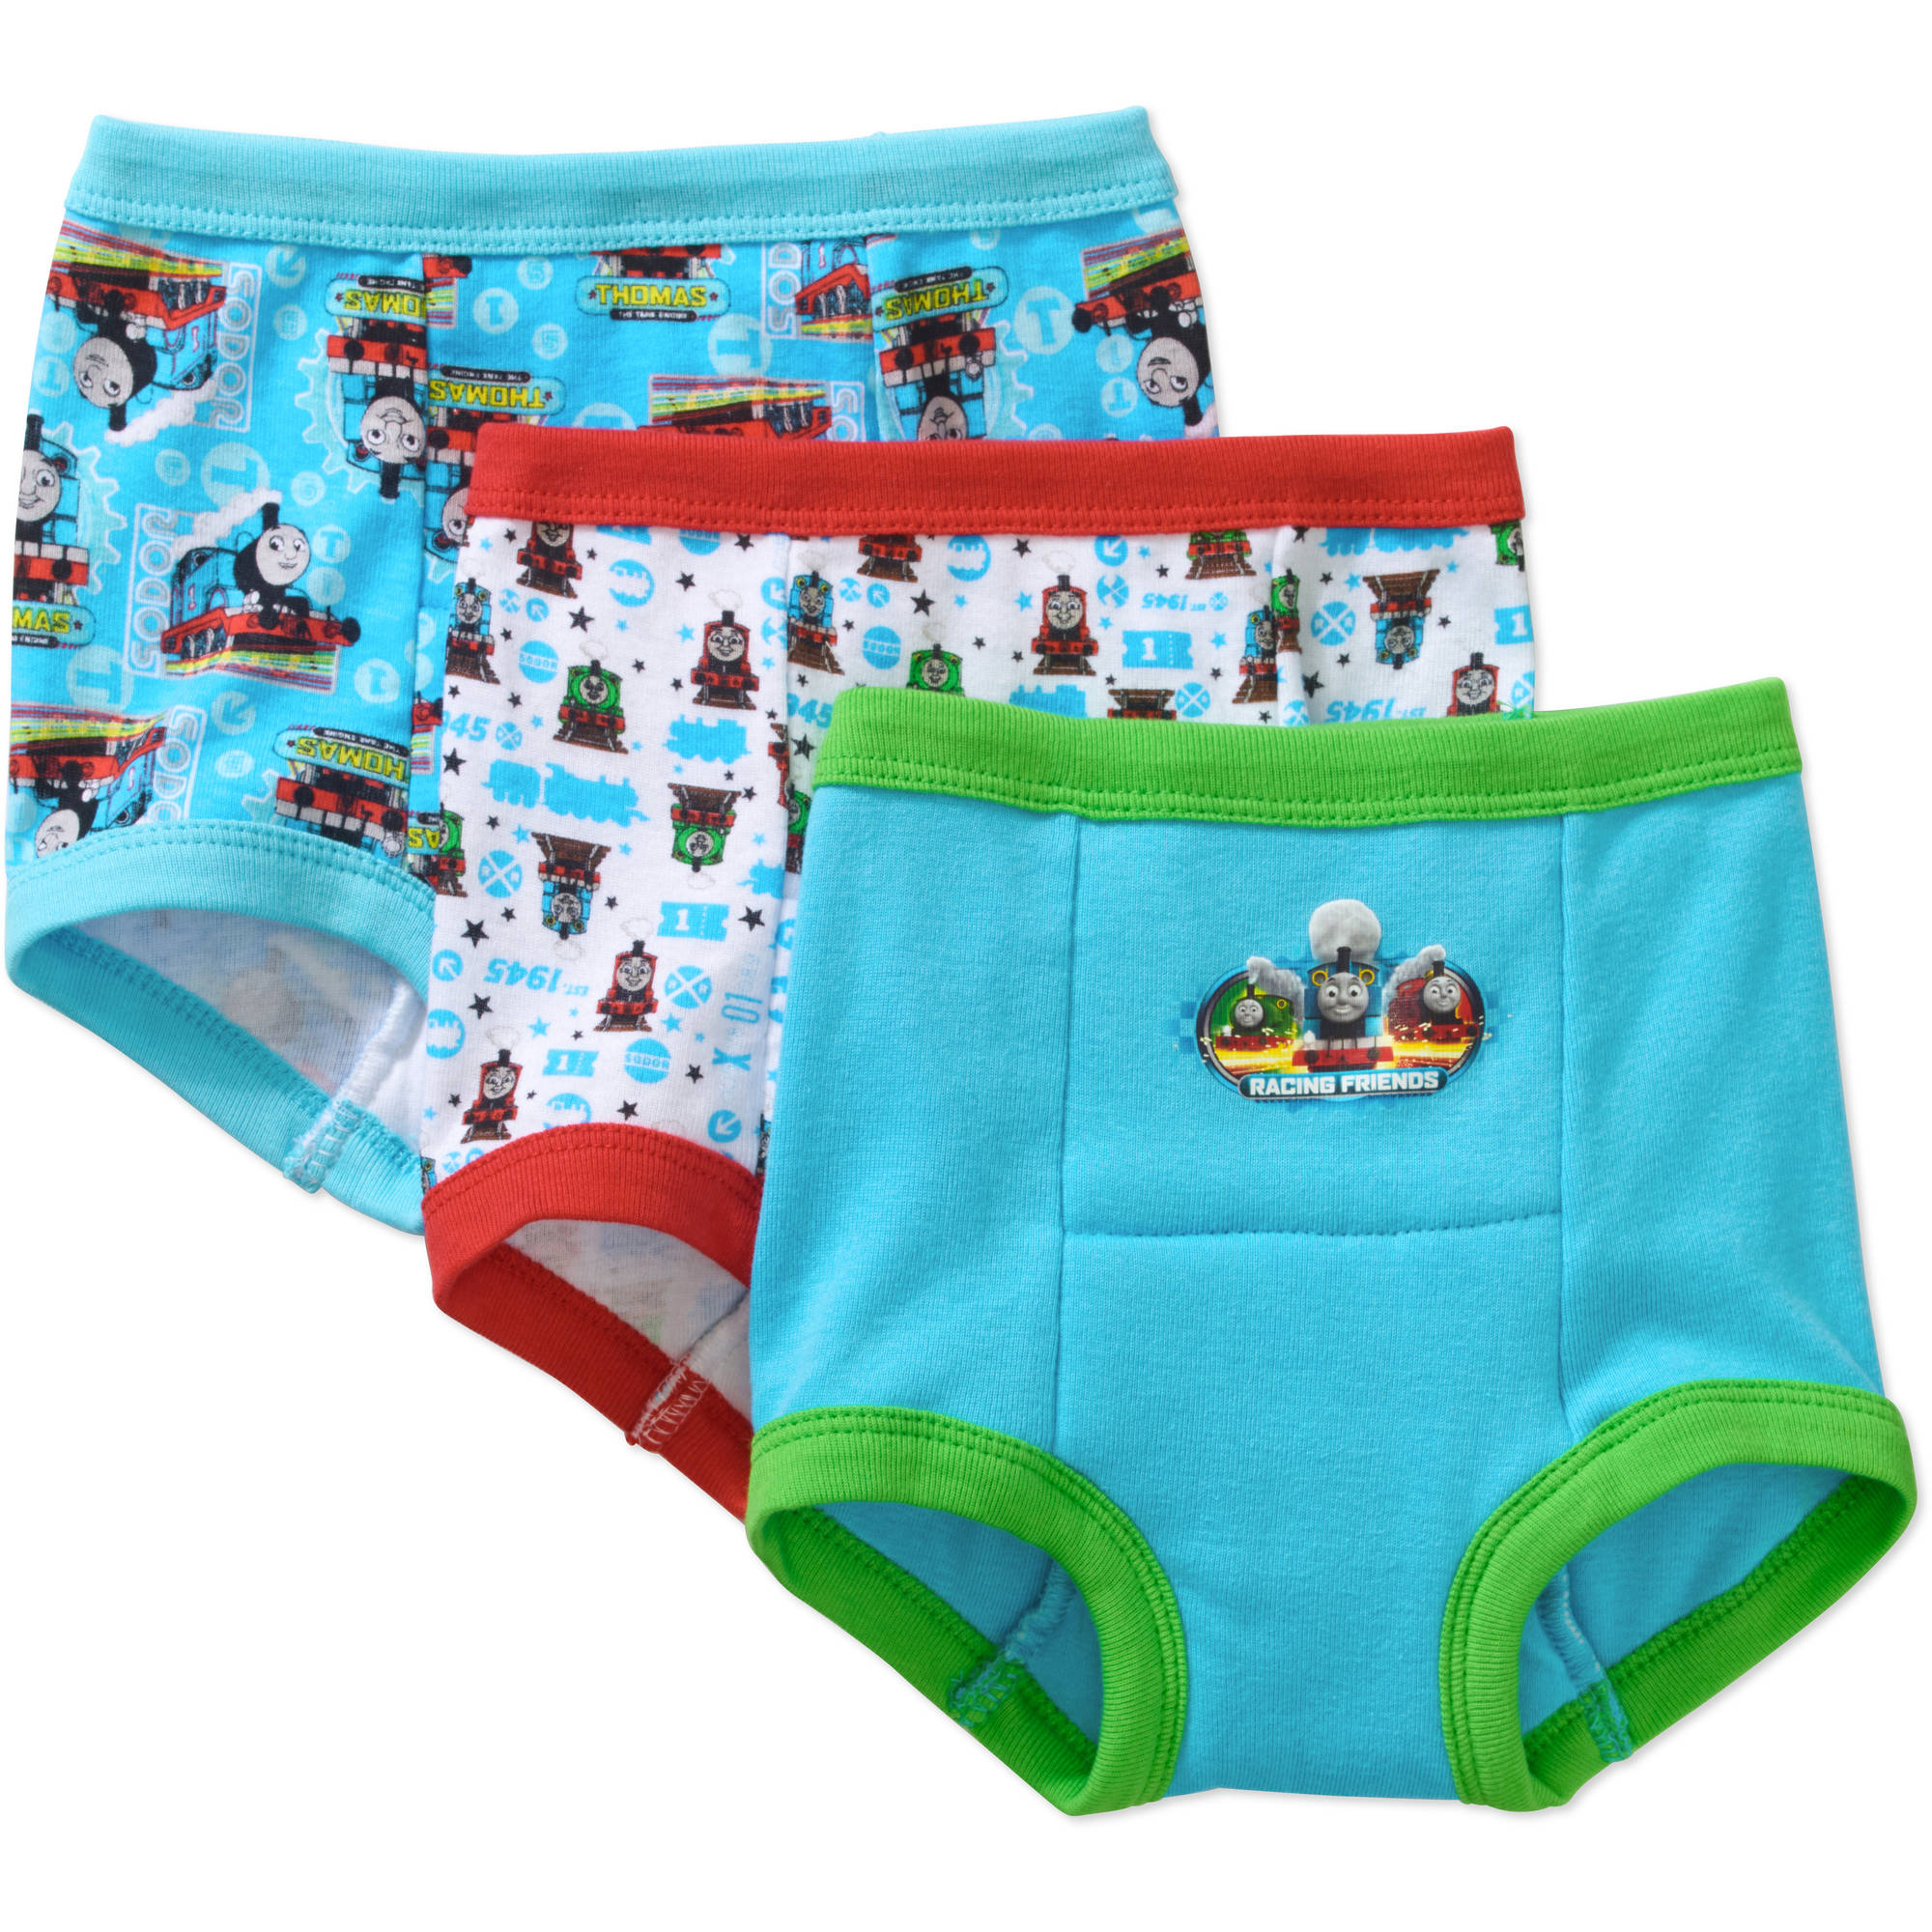 Nickelodeon Boys Baby and Toddler Potty Training Underwear